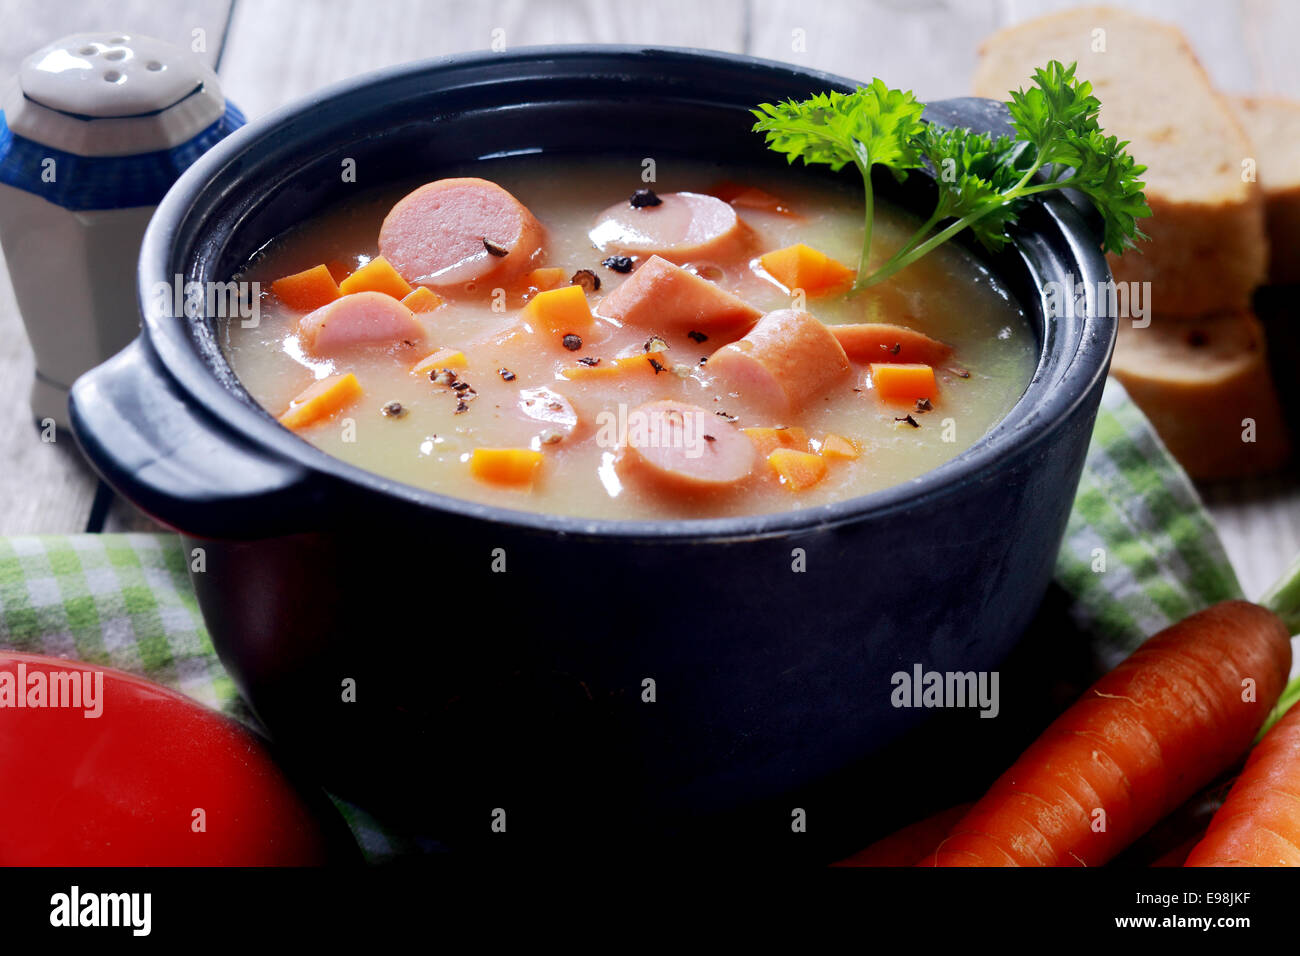 Close up Appetizing Creamy Soup Dish on Black Pot Placed on Wooden Table. - Stock Image